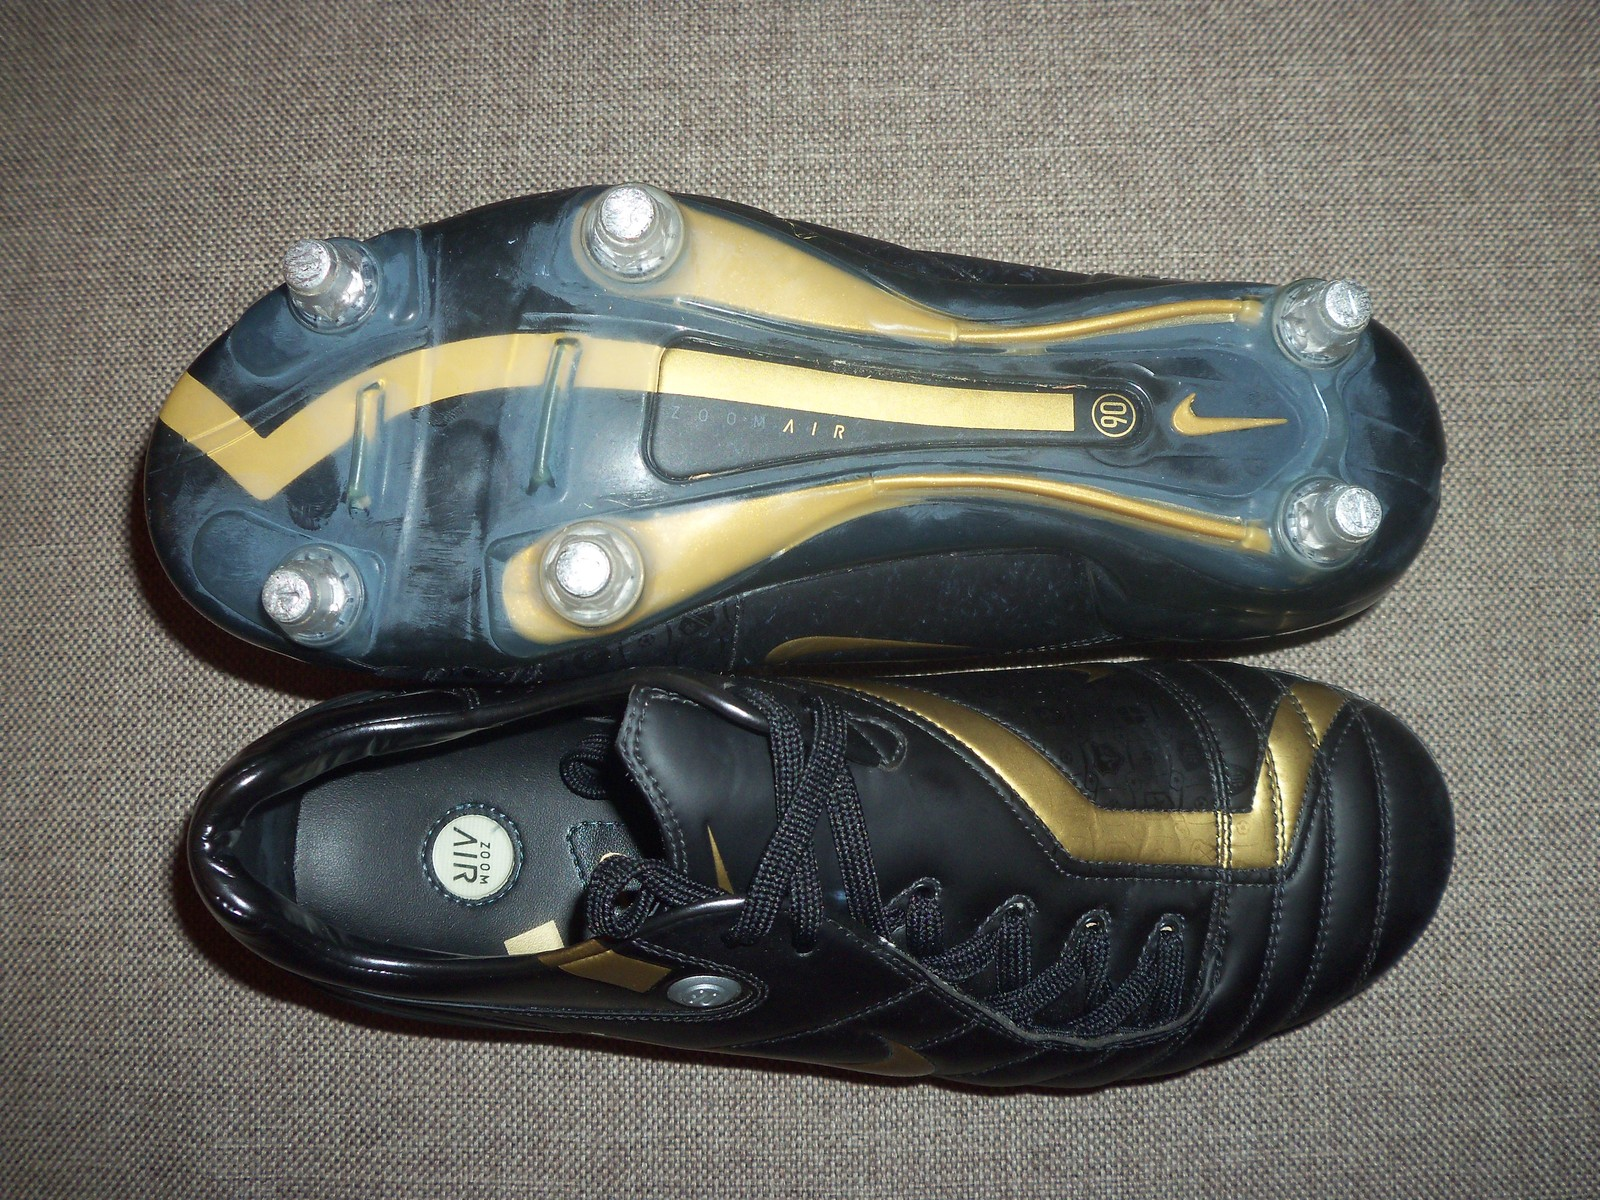 22dc538aceab NIKE AIR ZOOM TOTAL 90 SUPREMACY SG UK 7.5 US 8.5 FOOTBALL BOOTS SOCCER  CLEATS